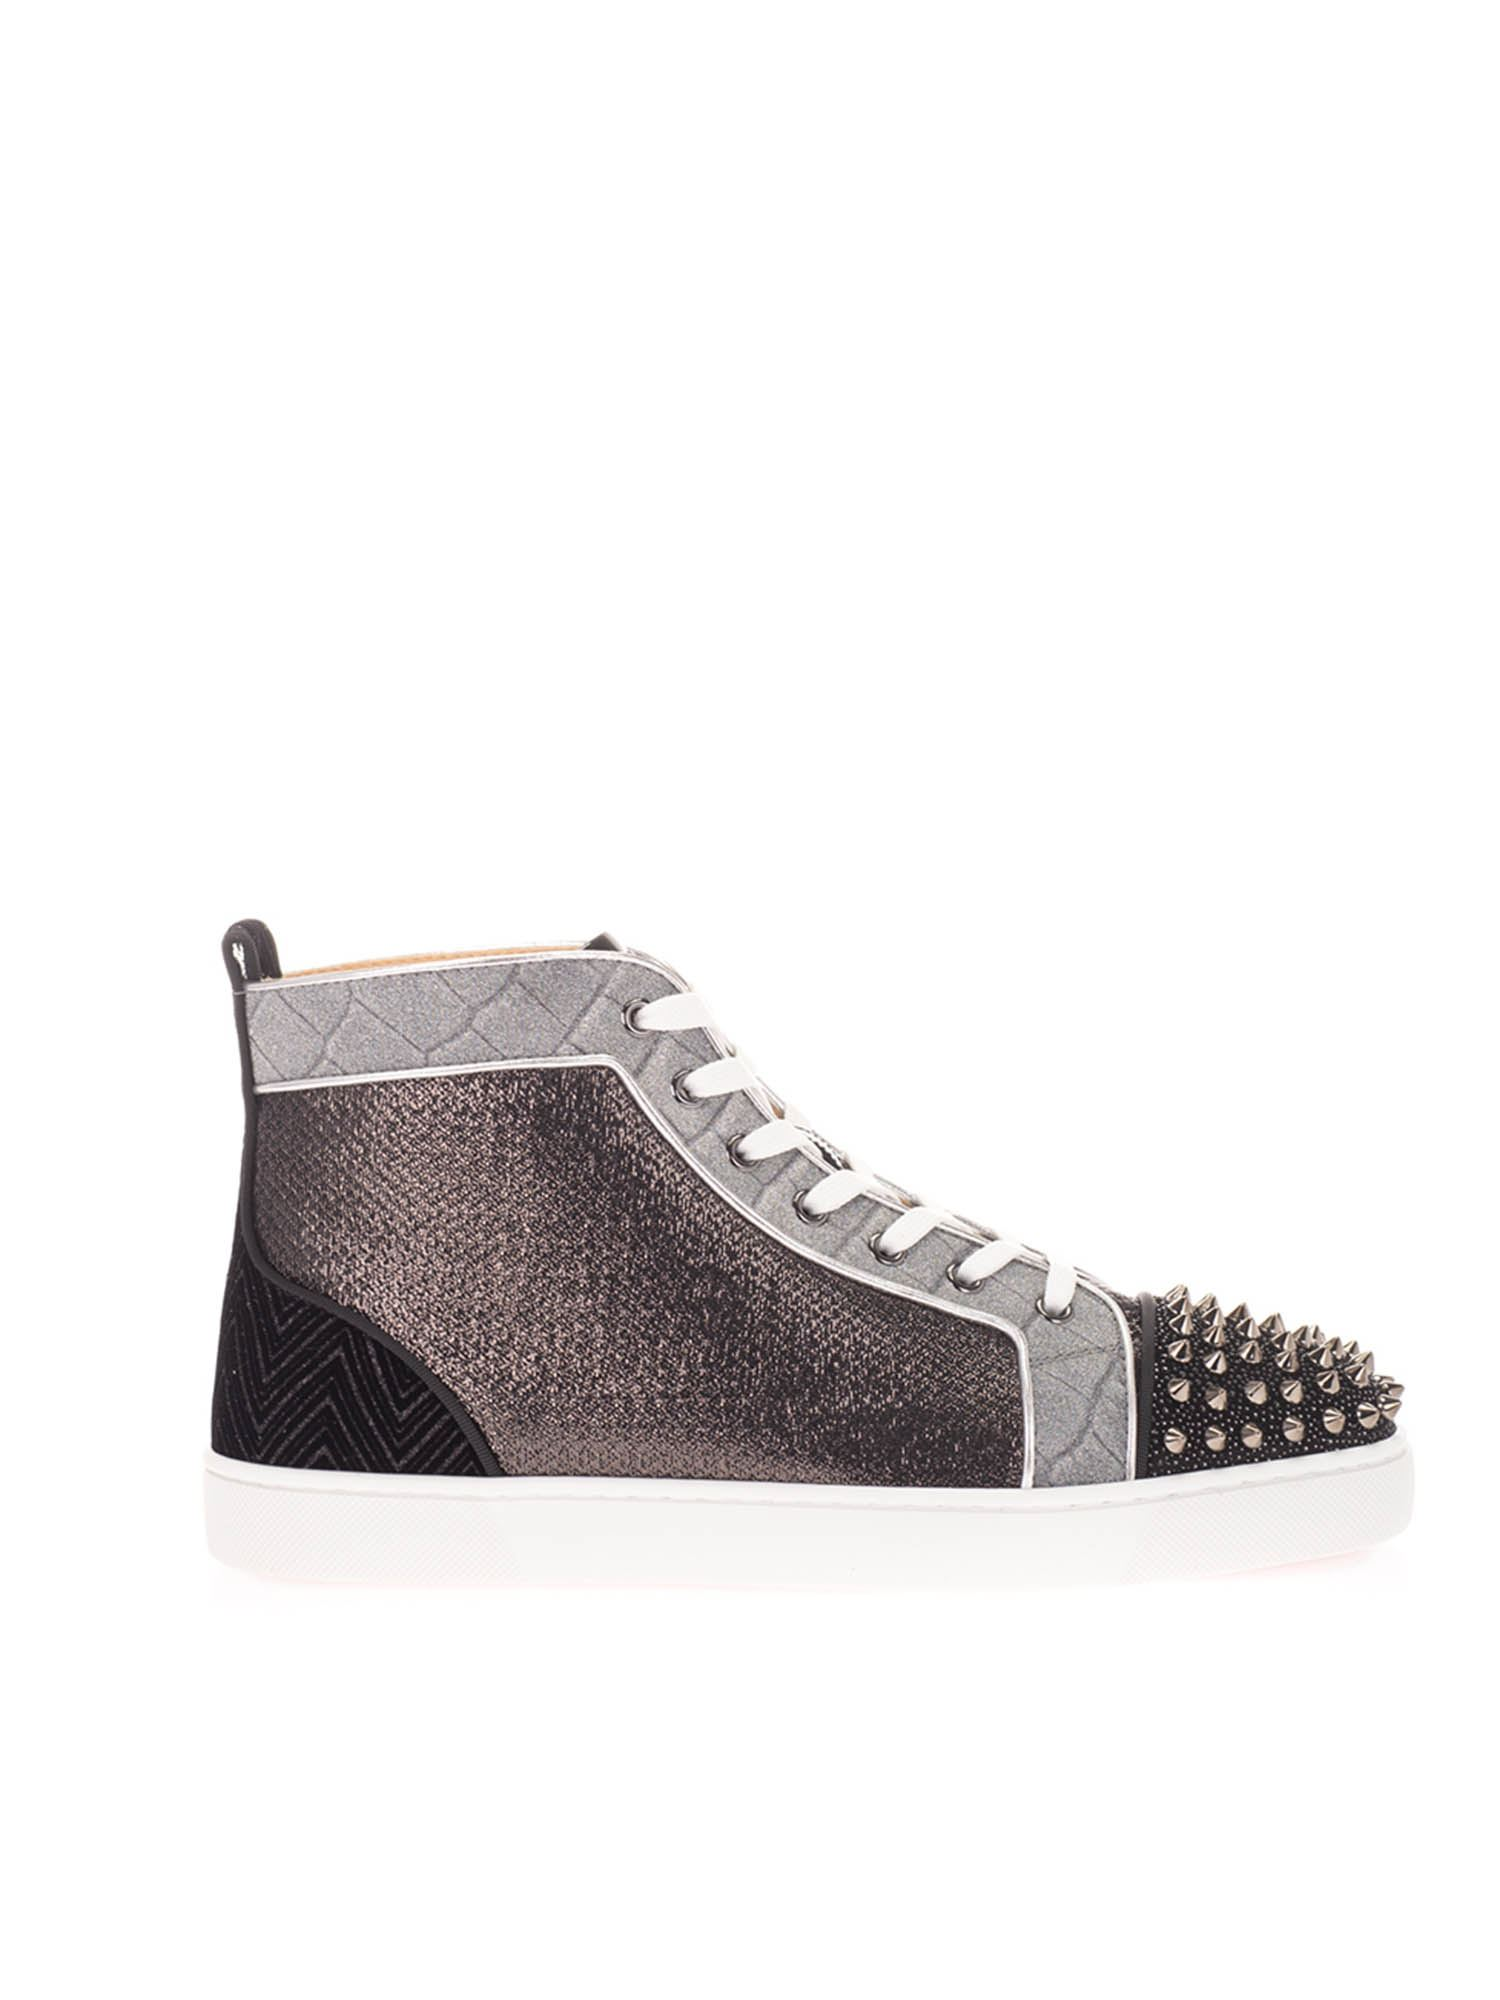 Christian Louboutin LOU SPIKES ORLATO SNEAKERS IN BLACK AND SILVER